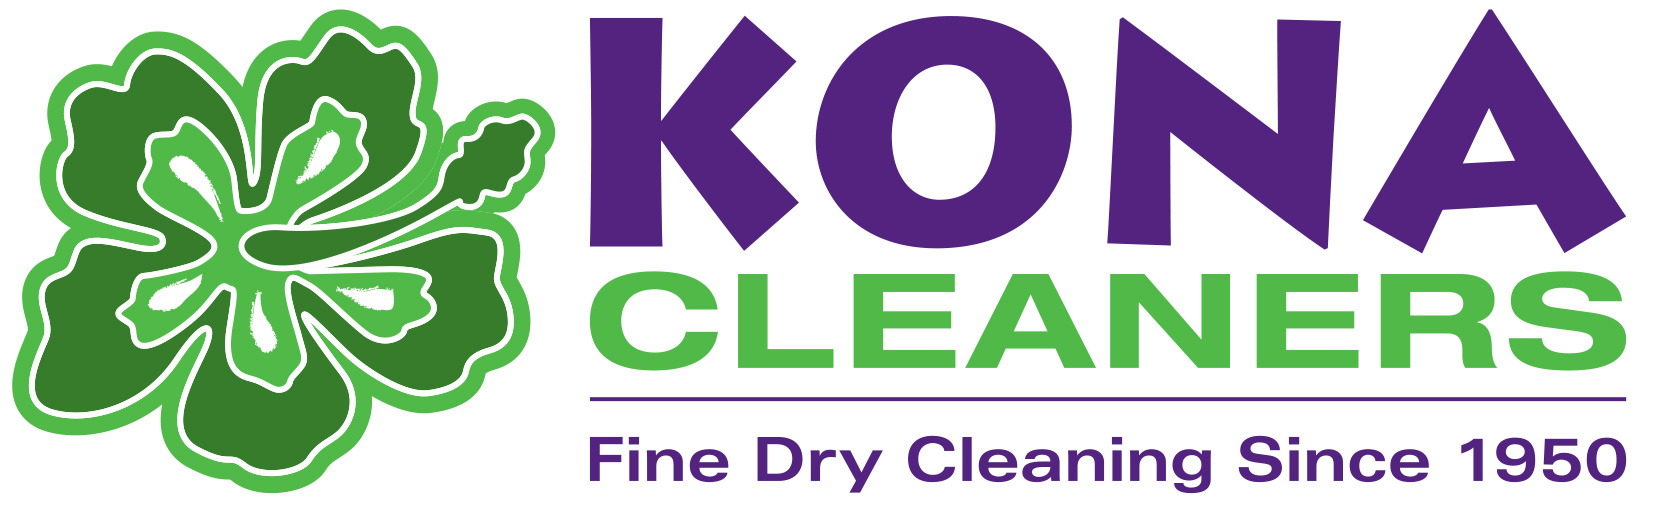 Dry cleaners in Orange County